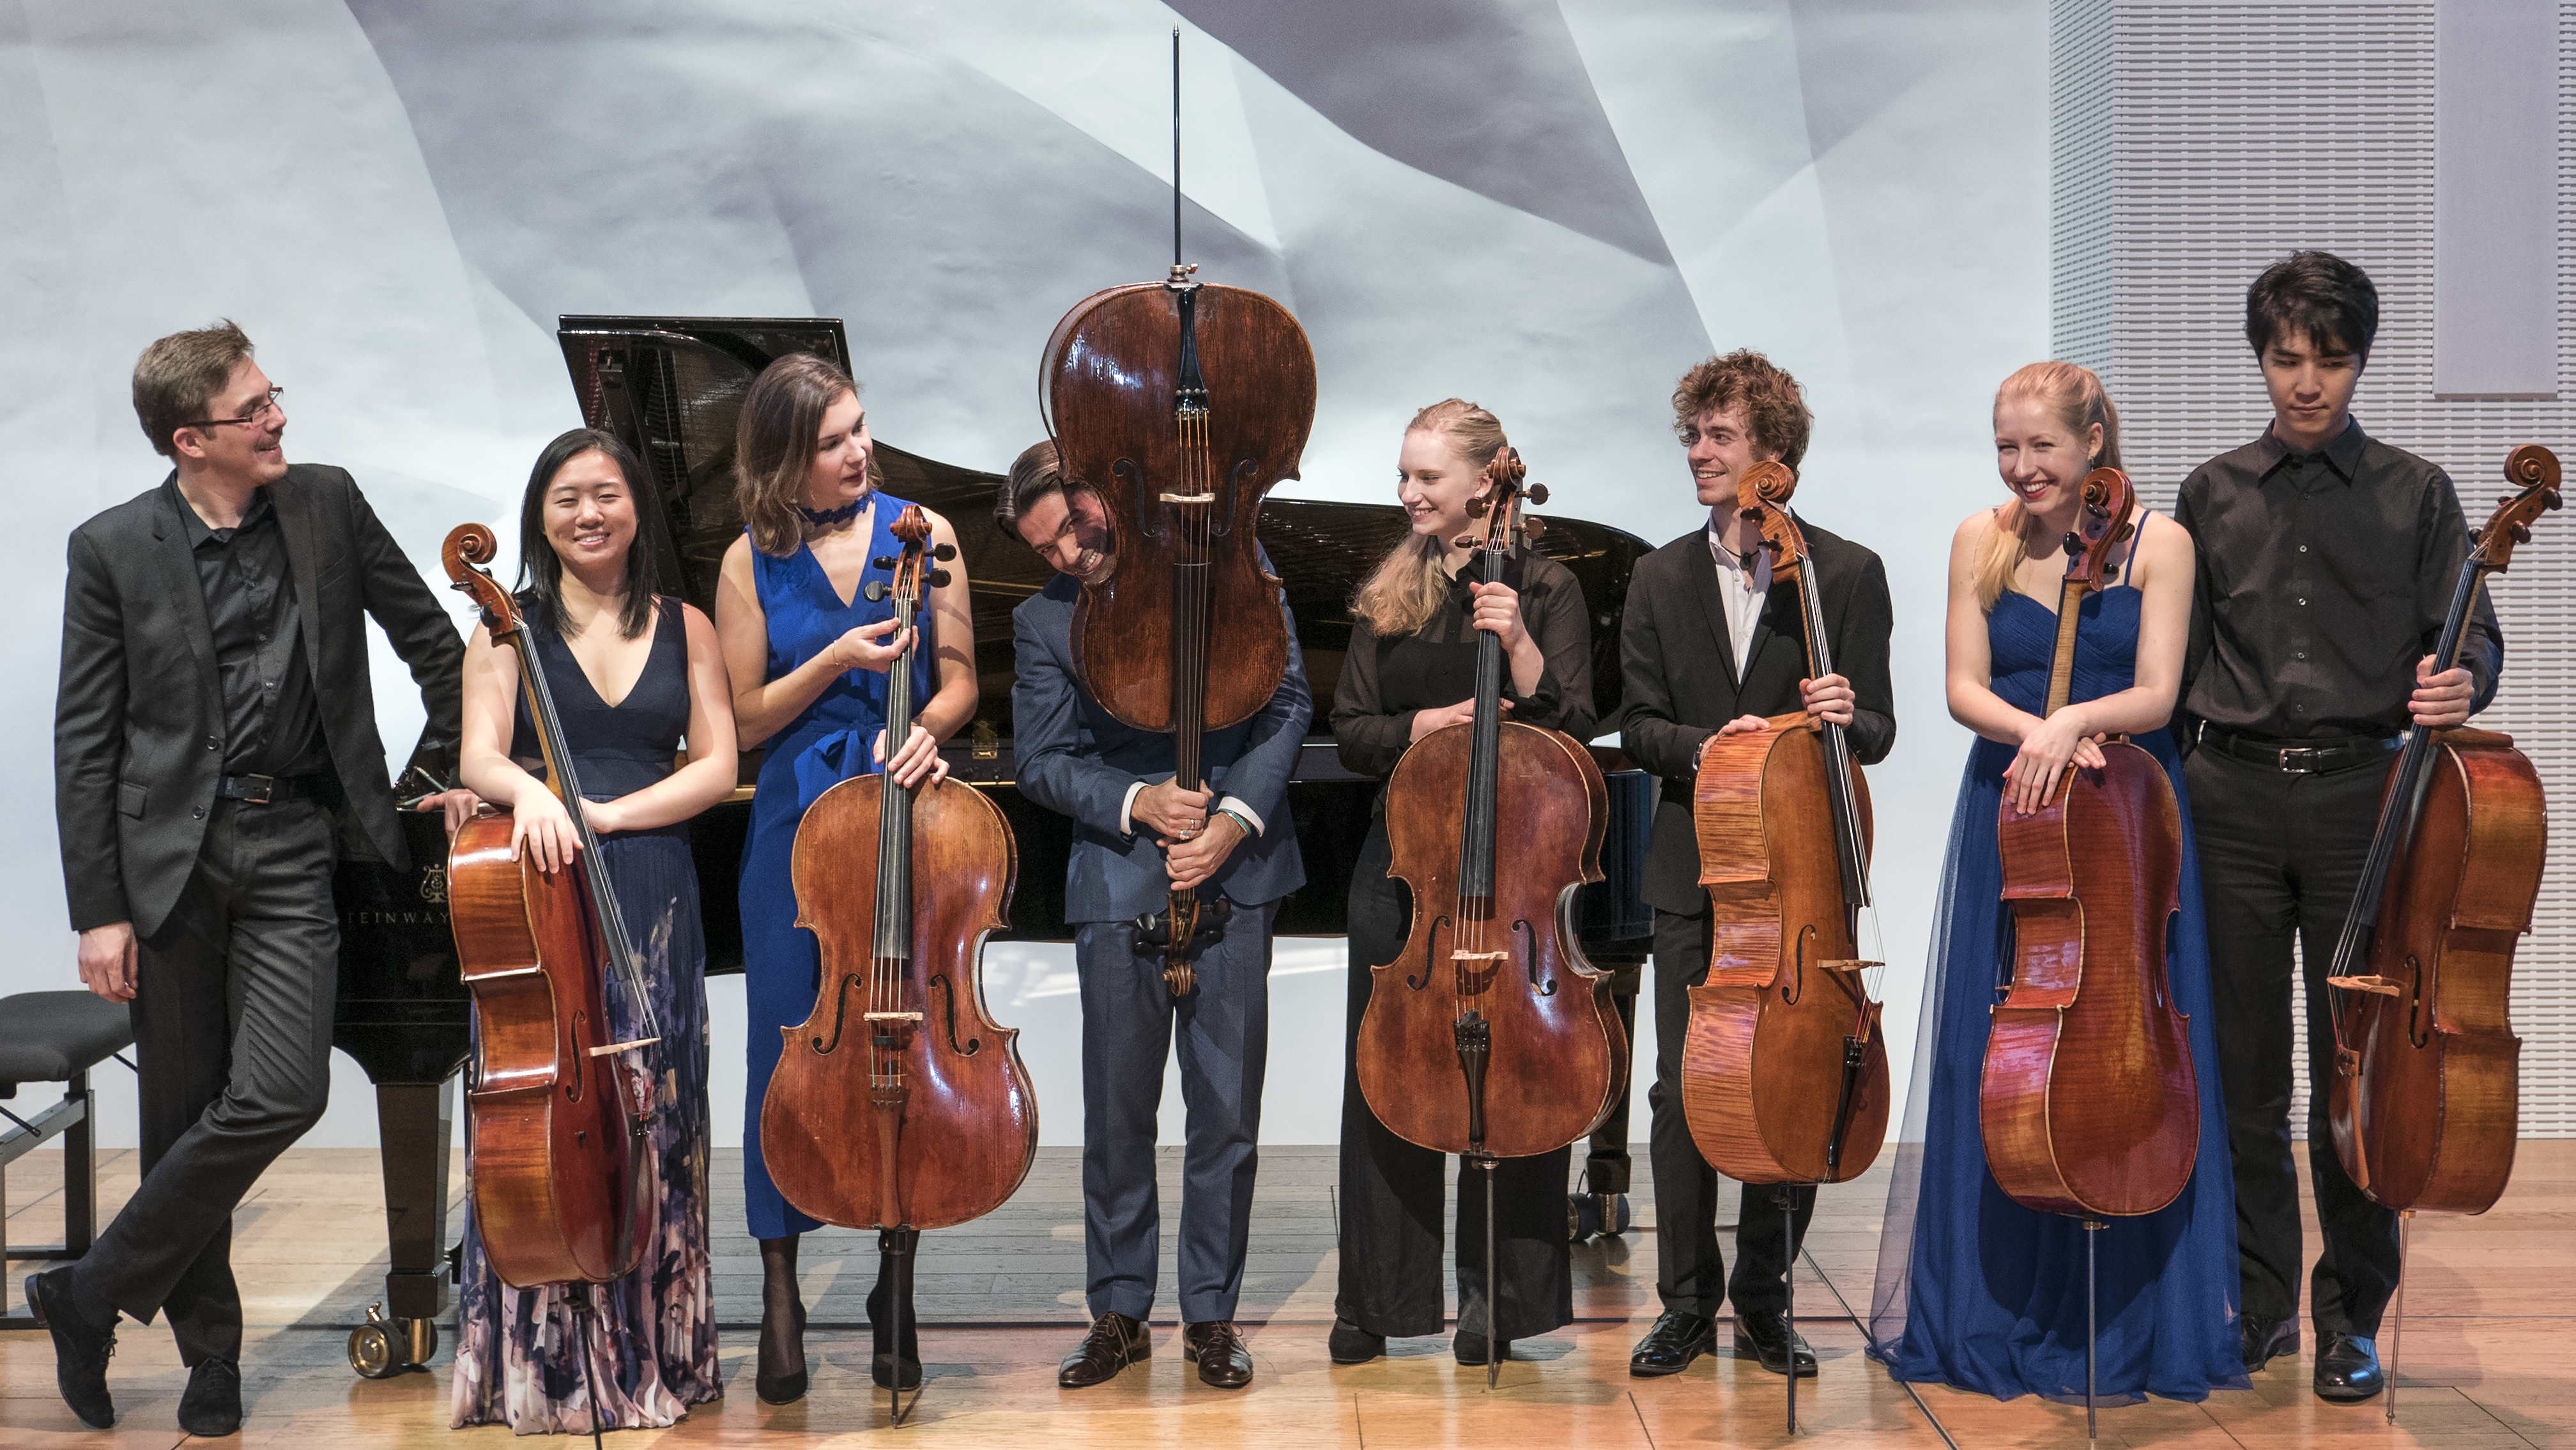 The concert of laureates (5) – Under the direction of Gautier Capuçon